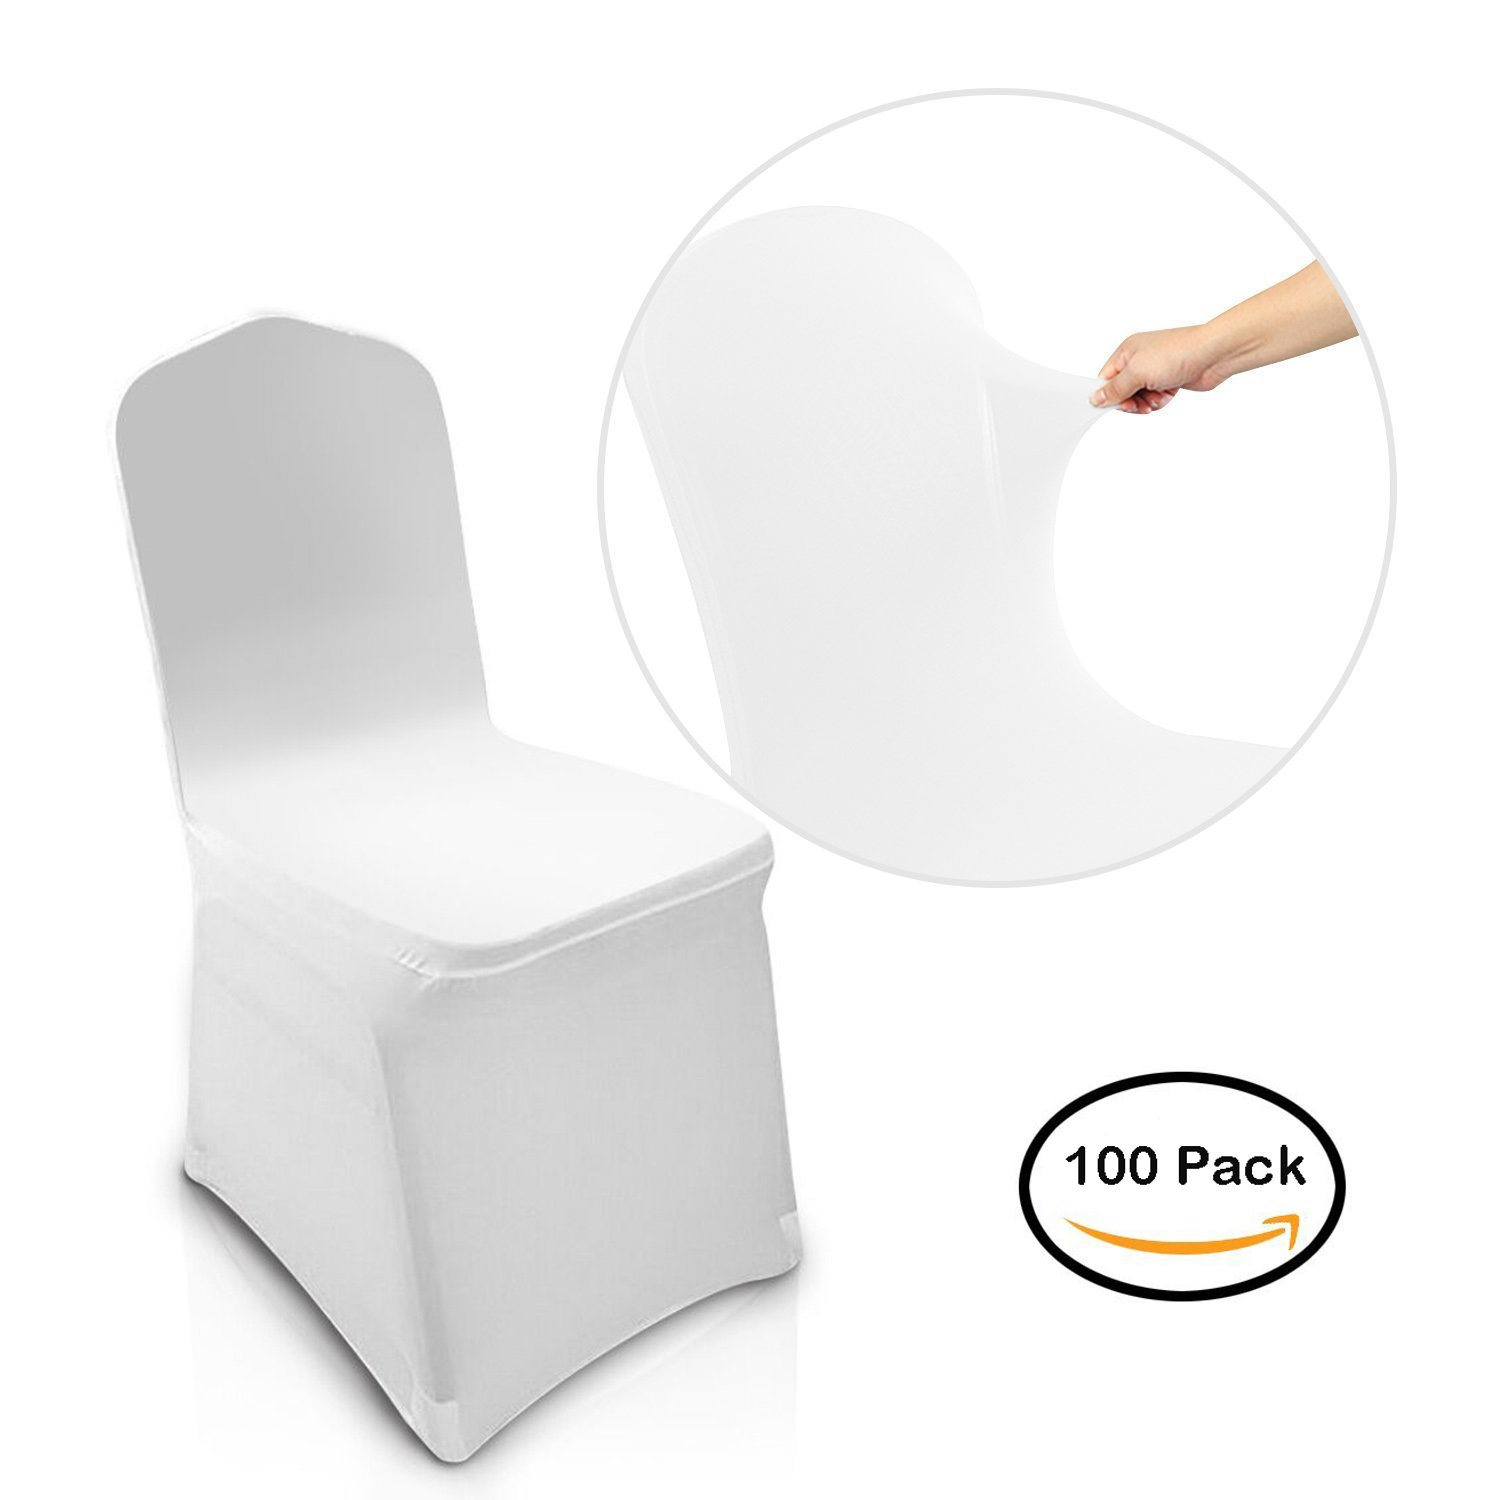 Fashine Universal 100pcs Polyester Spandex Chair Covers for Wedding, Banquet, Party (White) (US STOCK)